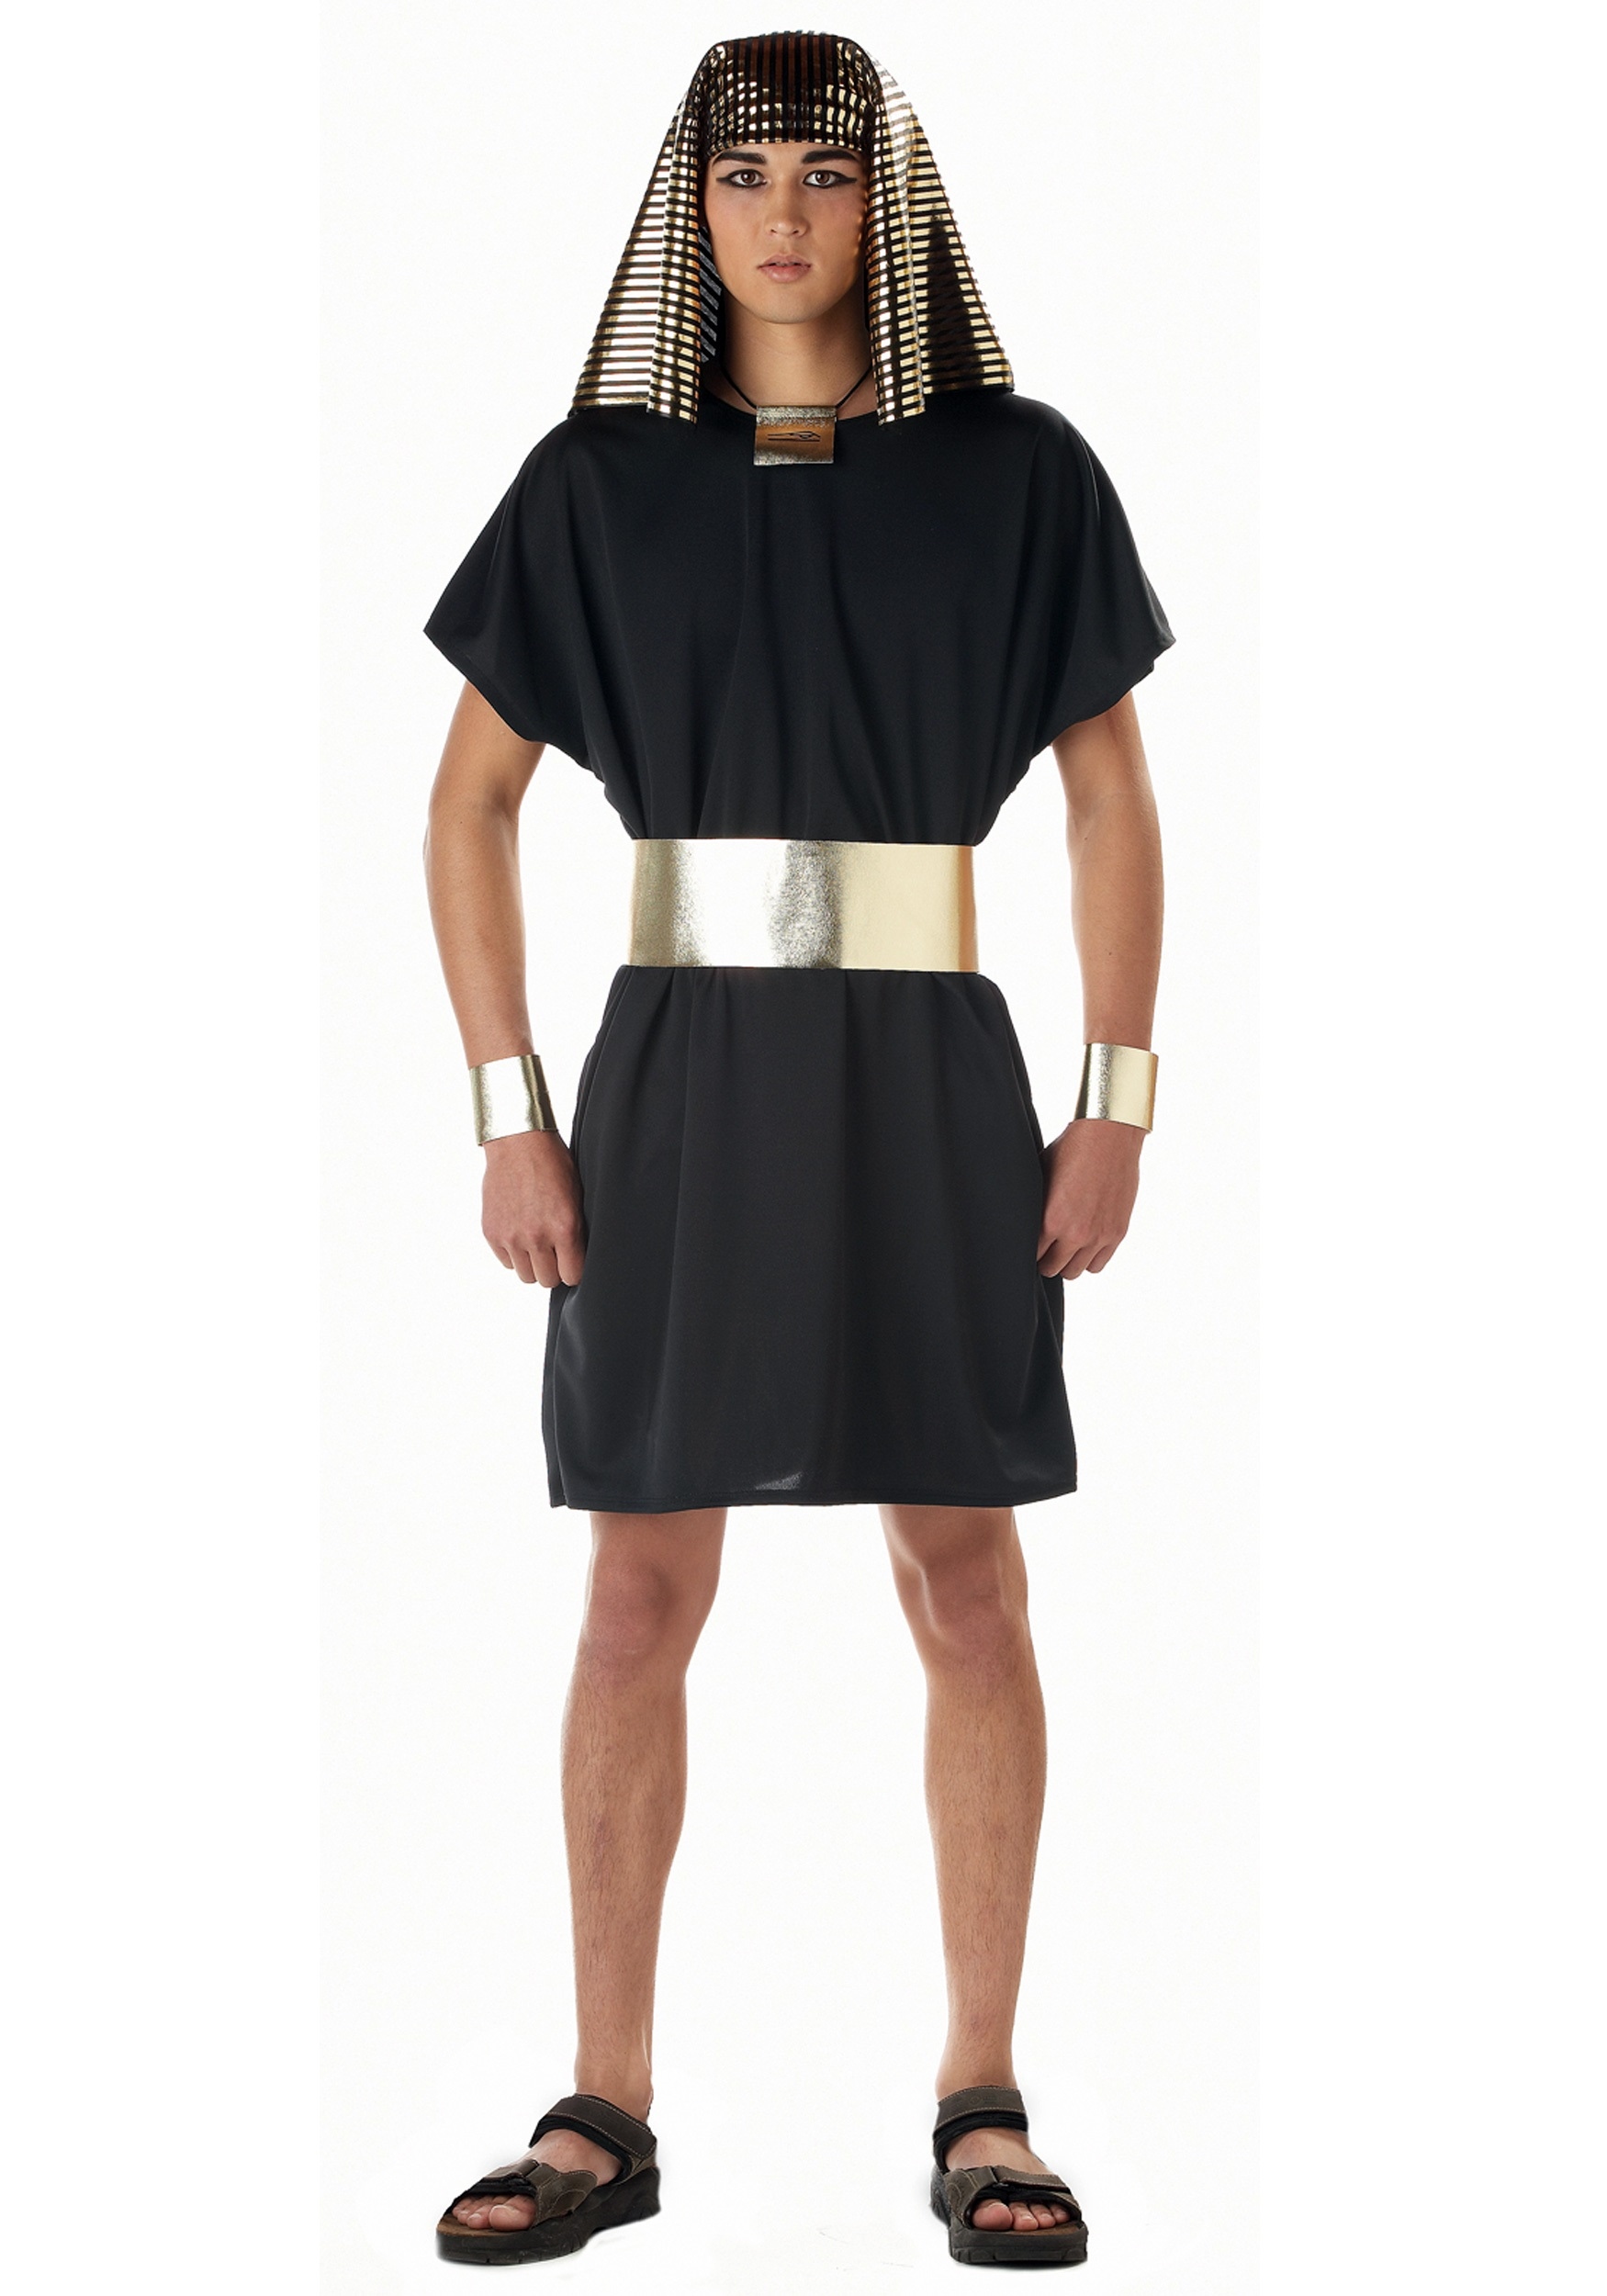 sc 1 st  Halloween Costumes & Adult Egyptian Pharaoh Costume